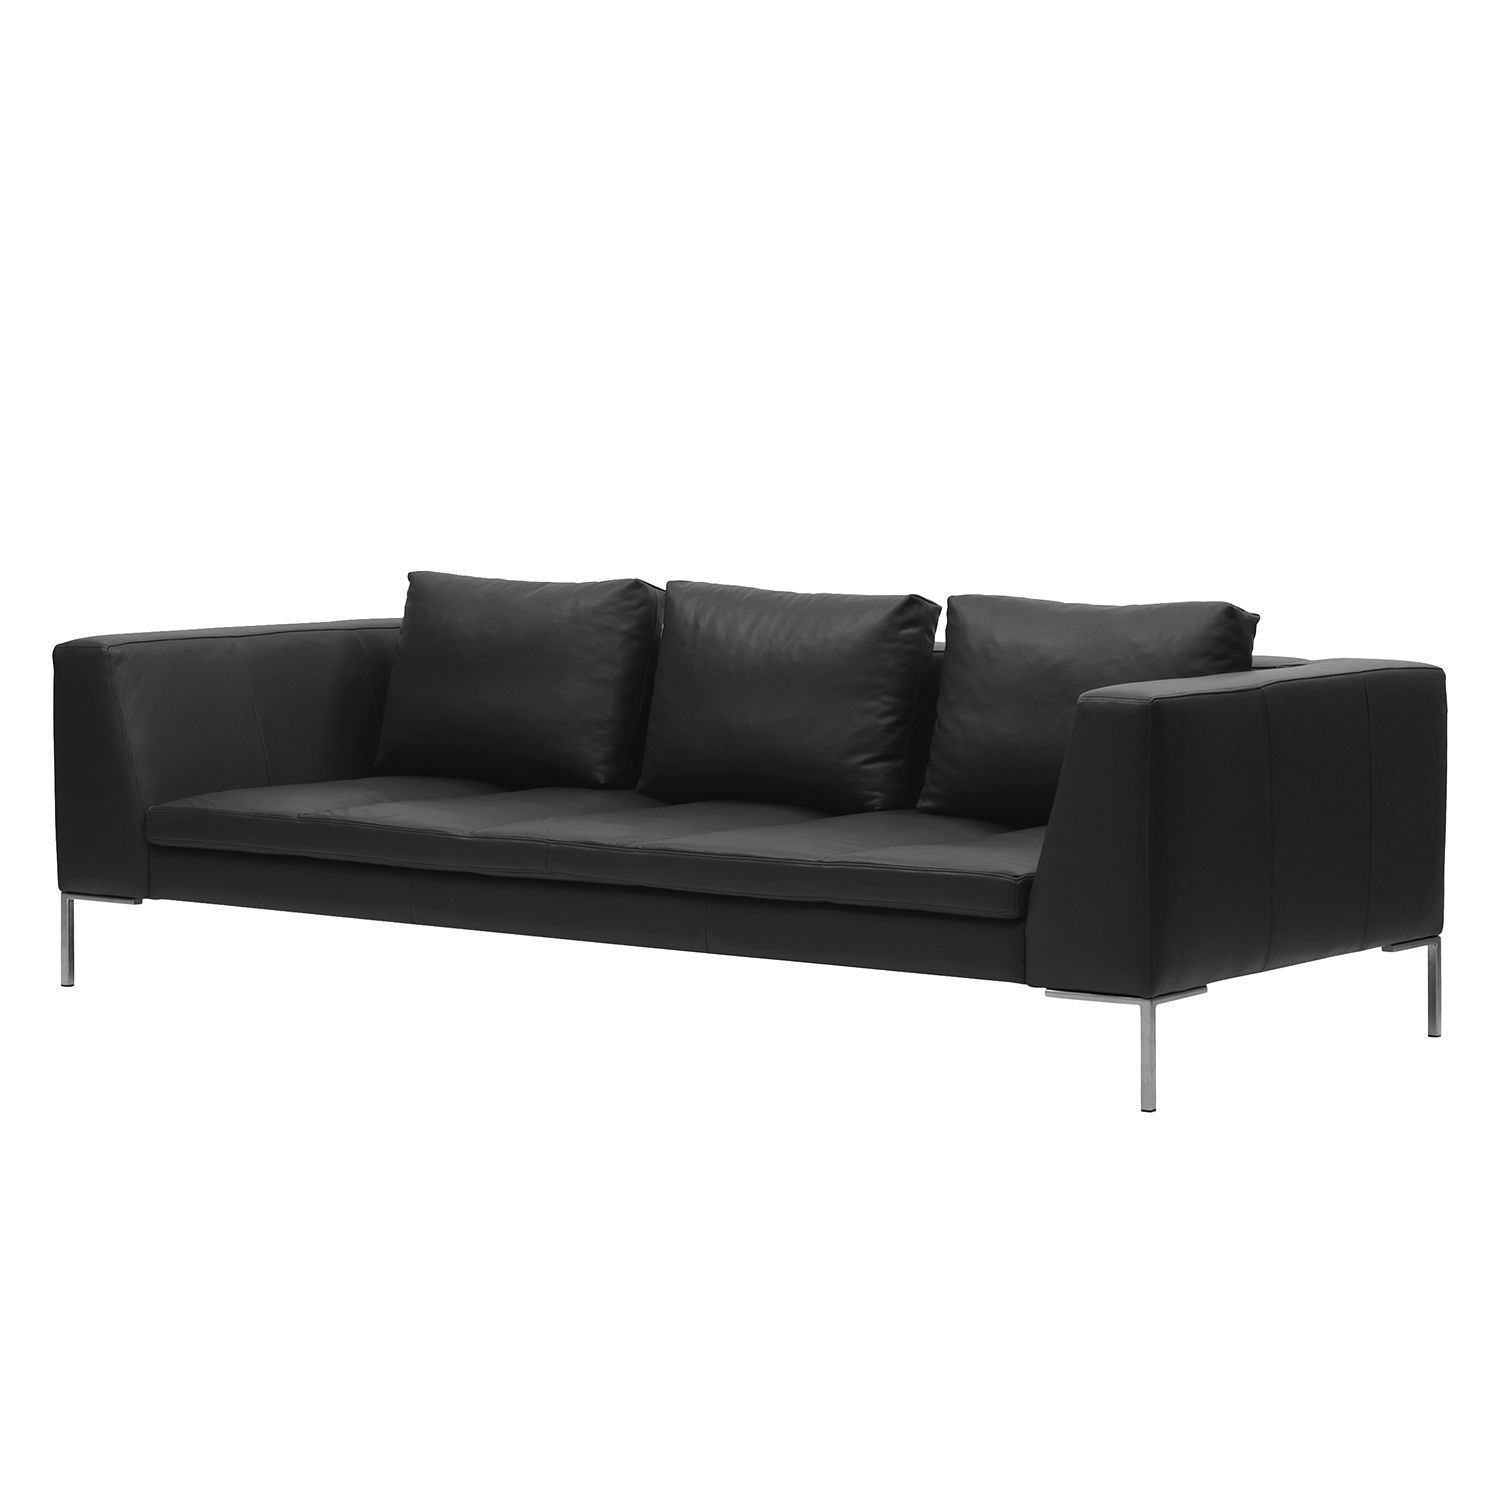 sofa madison 3 sitzer echtleder echtleder neka grau. Black Bedroom Furniture Sets. Home Design Ideas